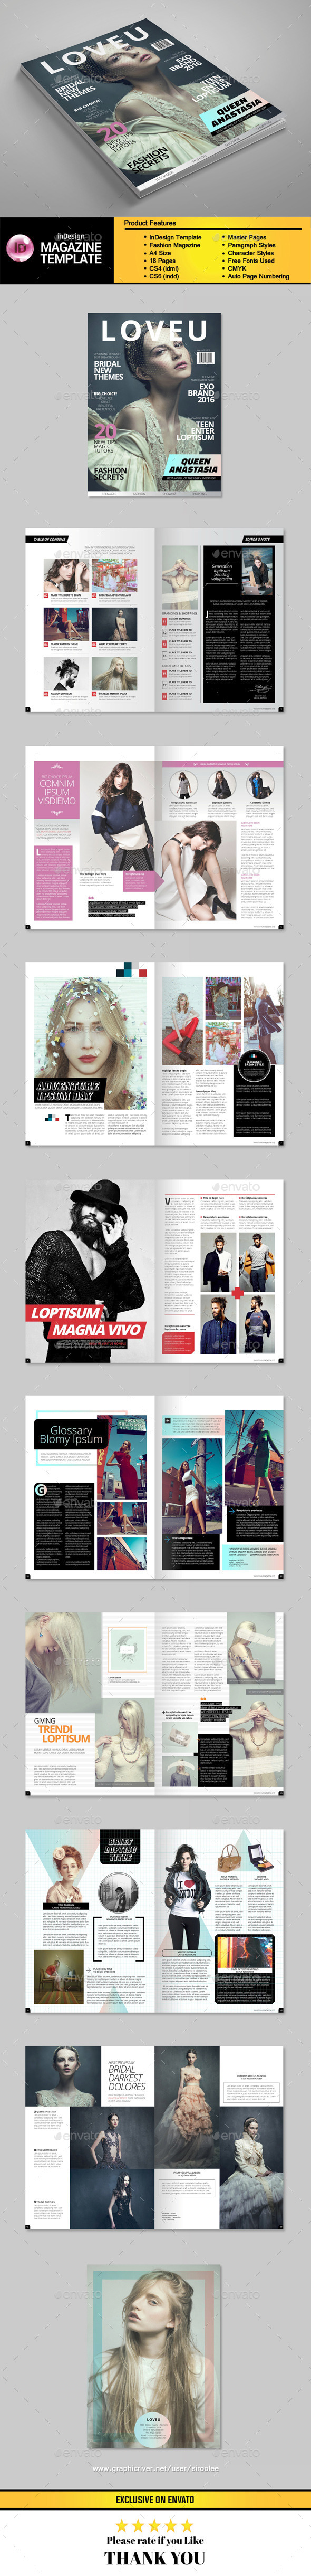 A4 InDesign Fashion Template - Magazines Print Templates